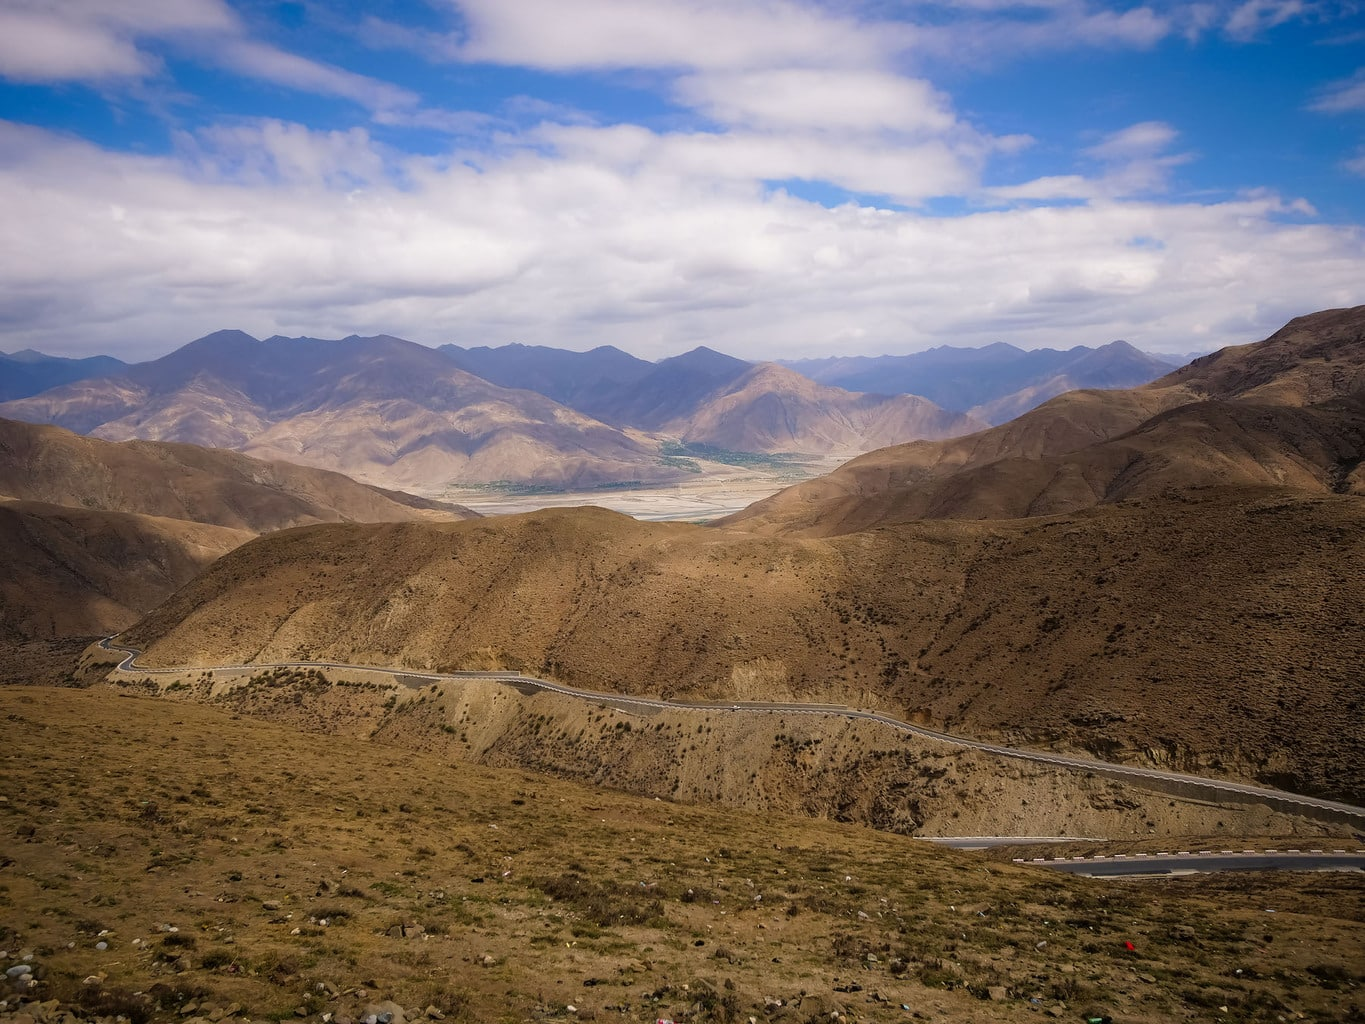 View from above Tibet